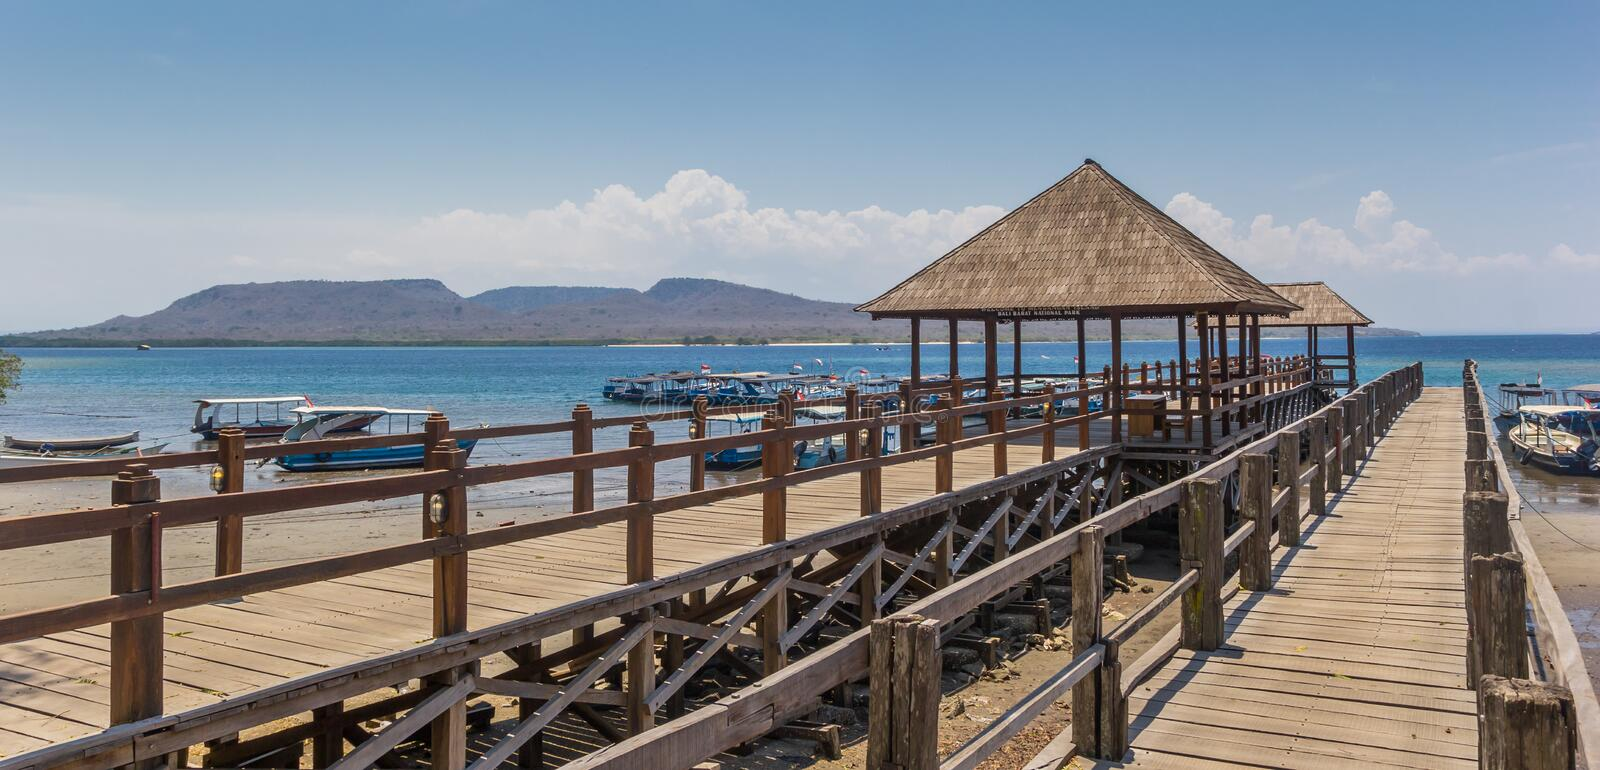 Panorama of a wooden jetty at the Bali Barat National Park. Indonesia stock photography